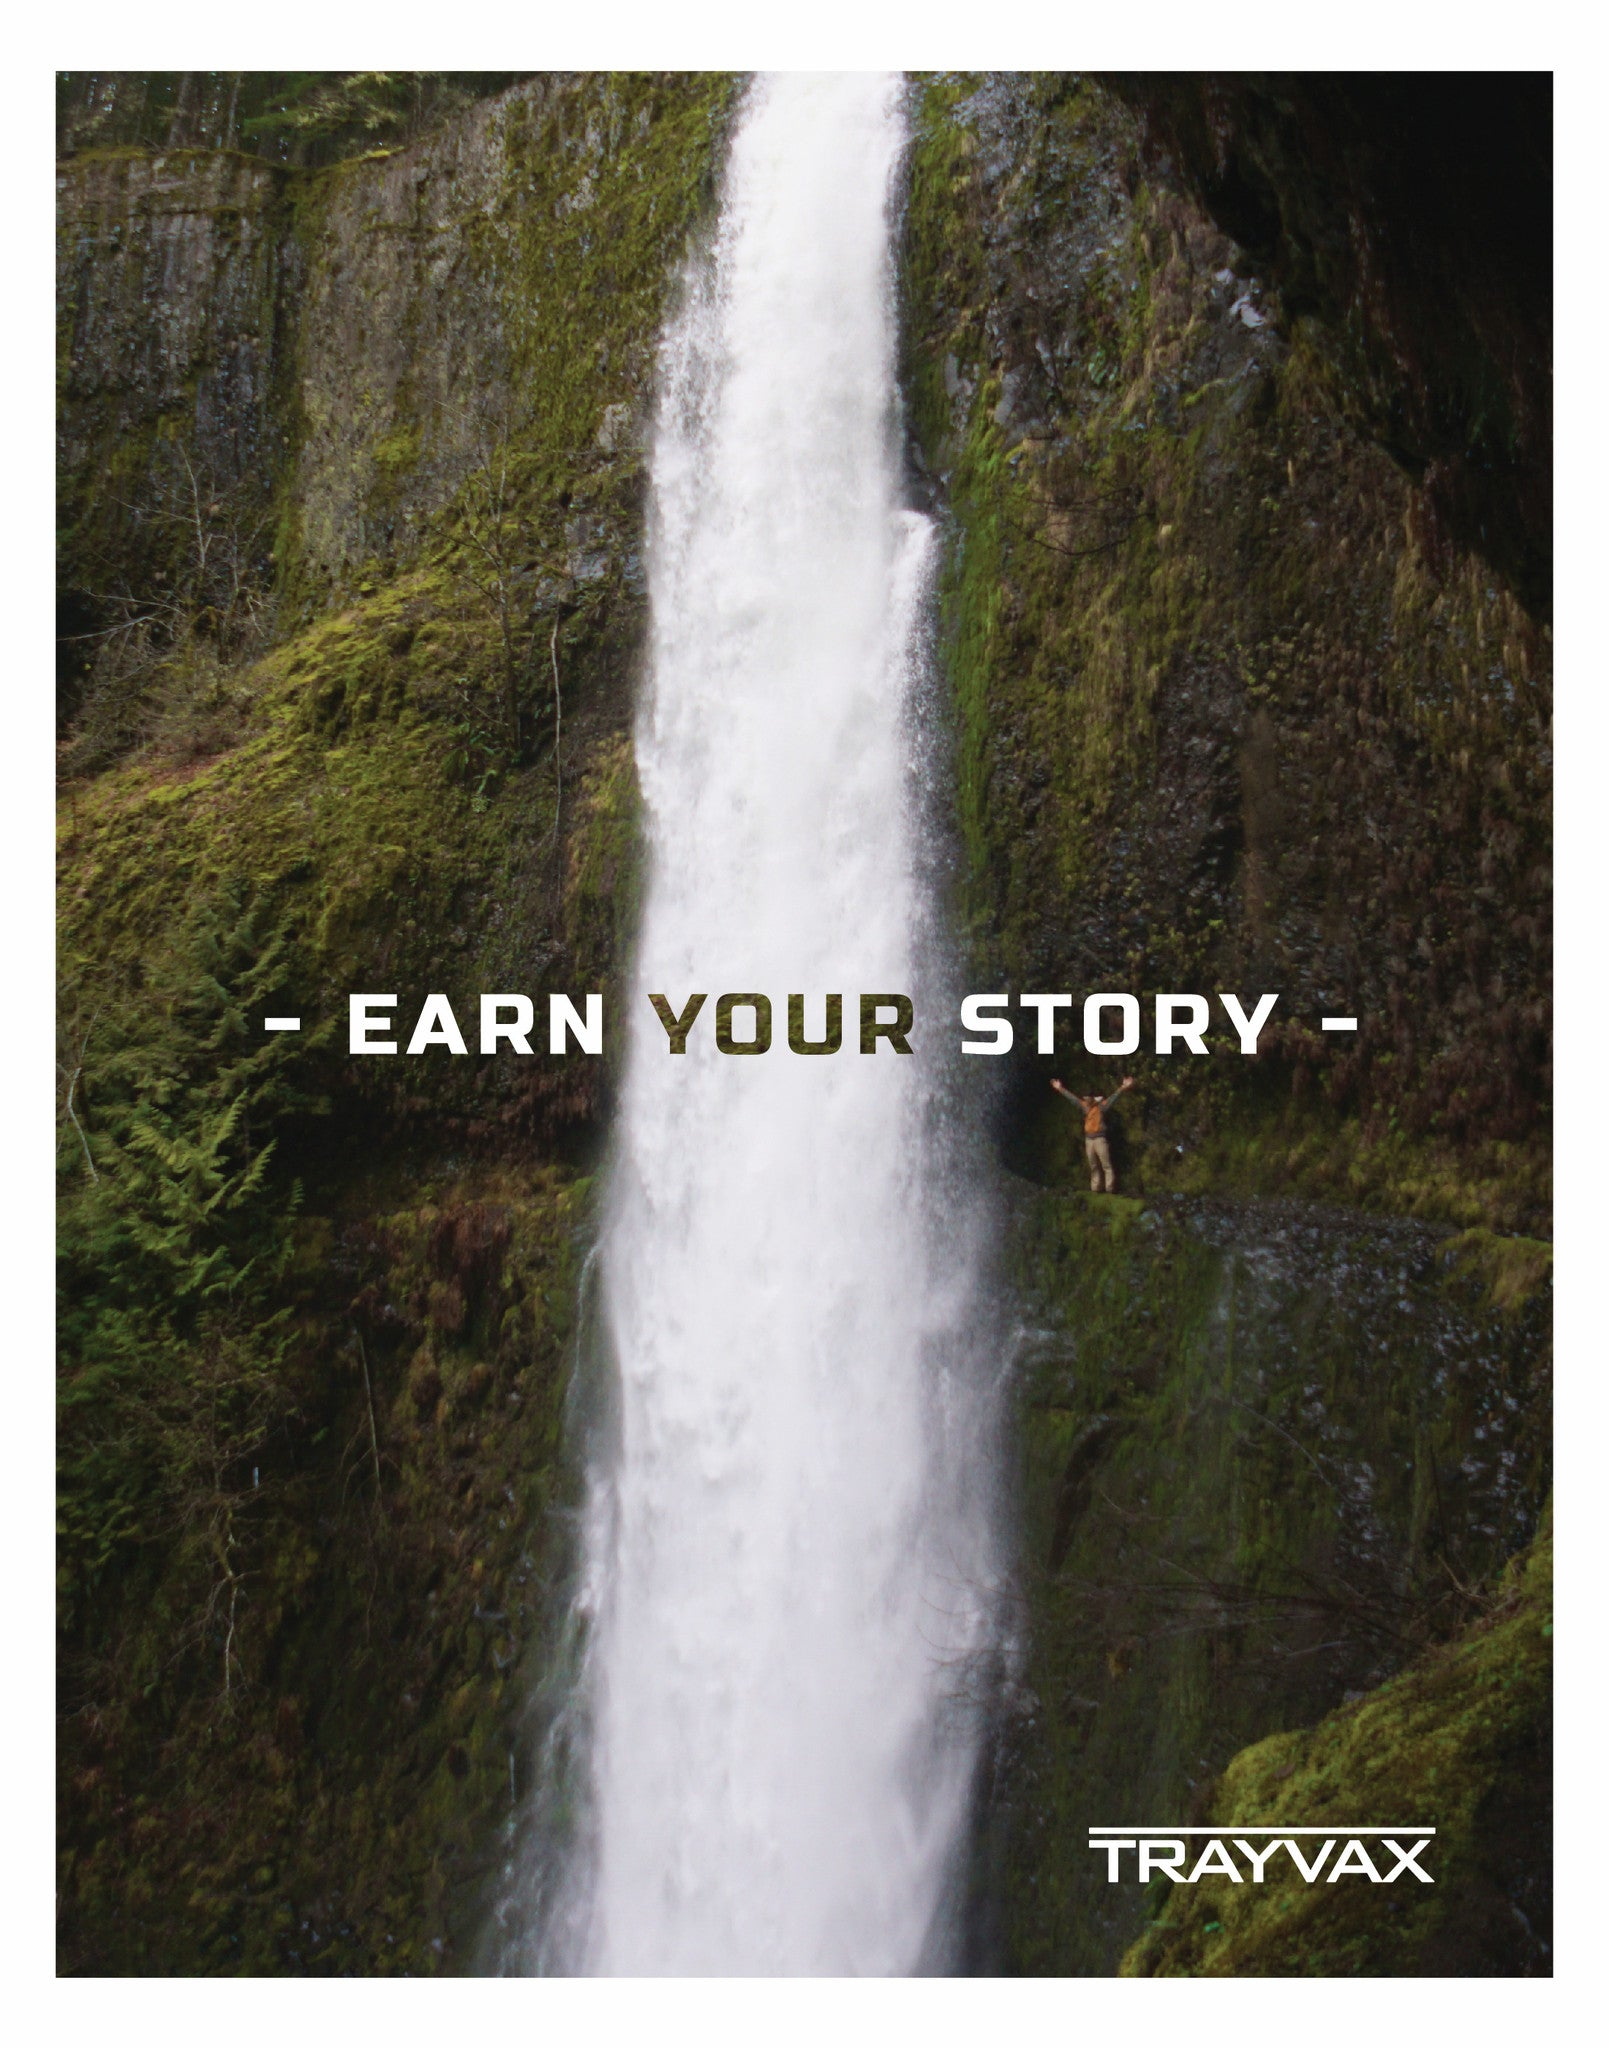 What it Means to Earn Your Story